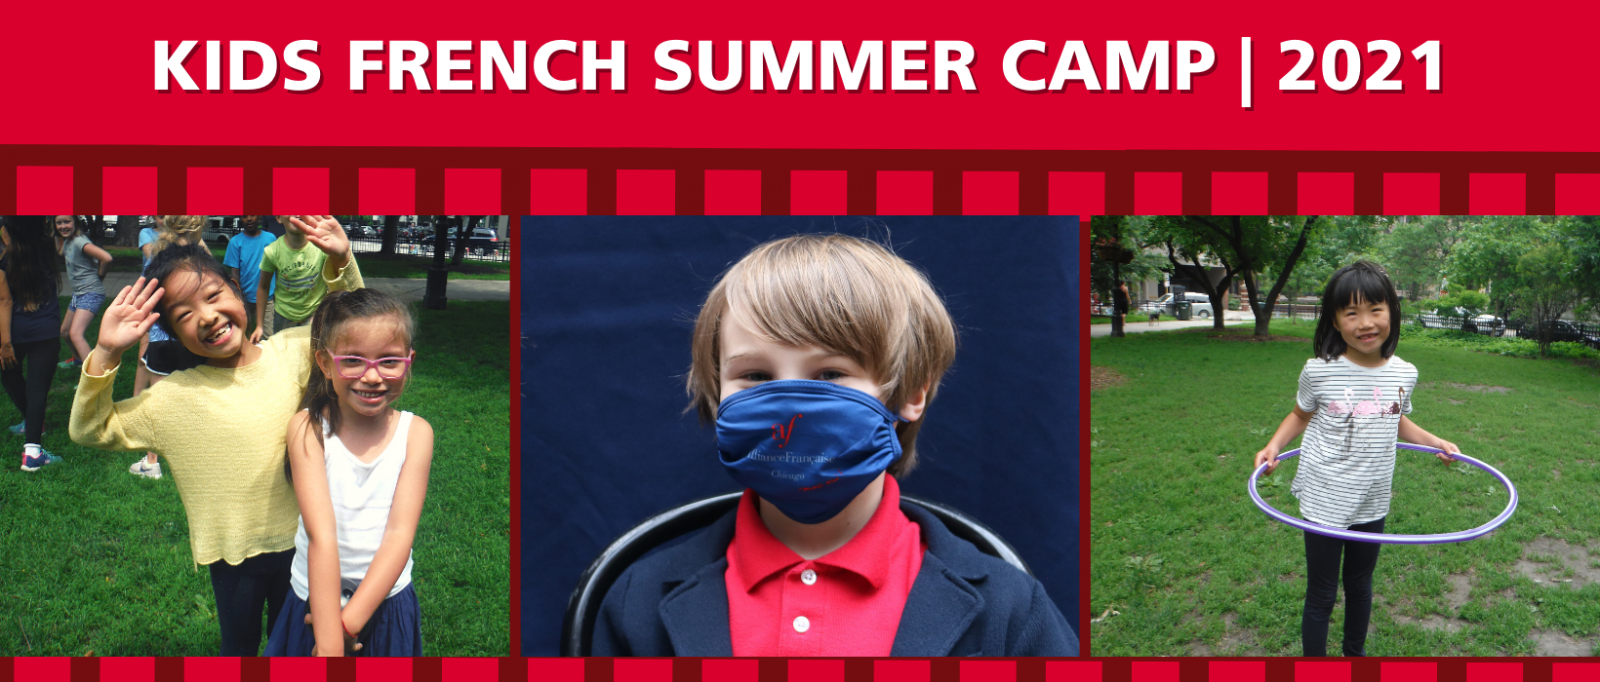 Kids French Summer Camp 2021